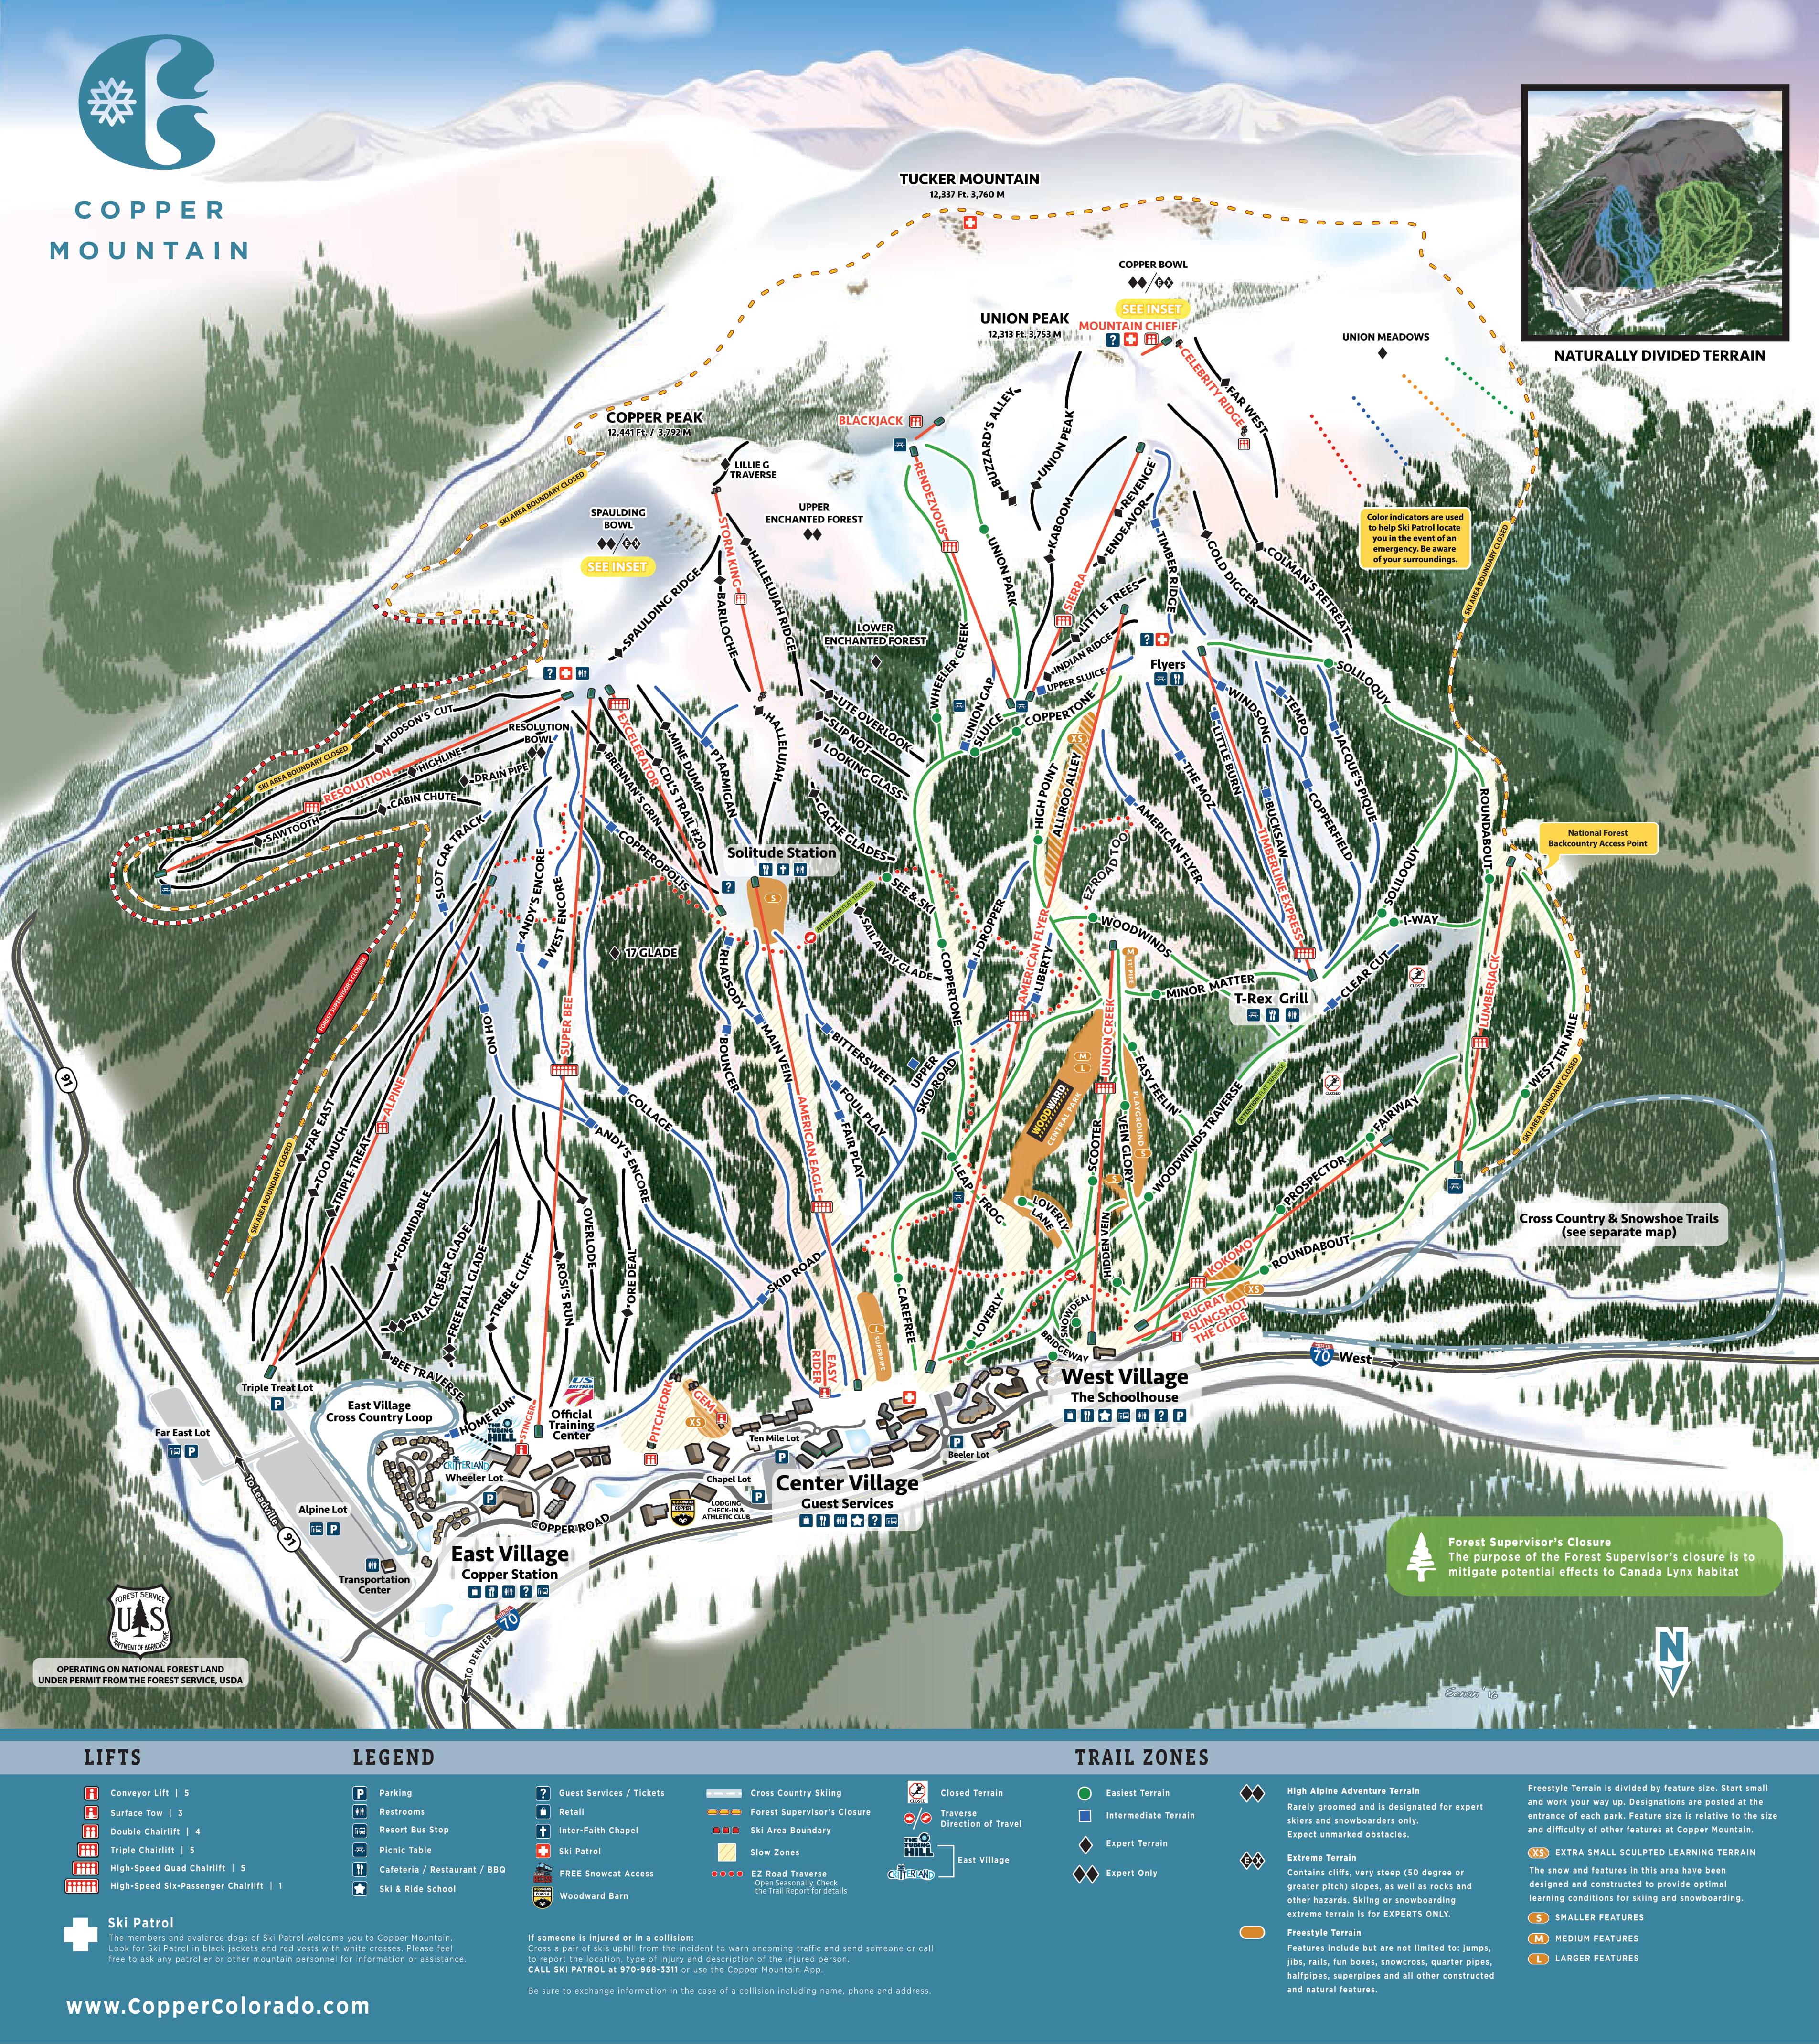 Copper Mountain Trail Map